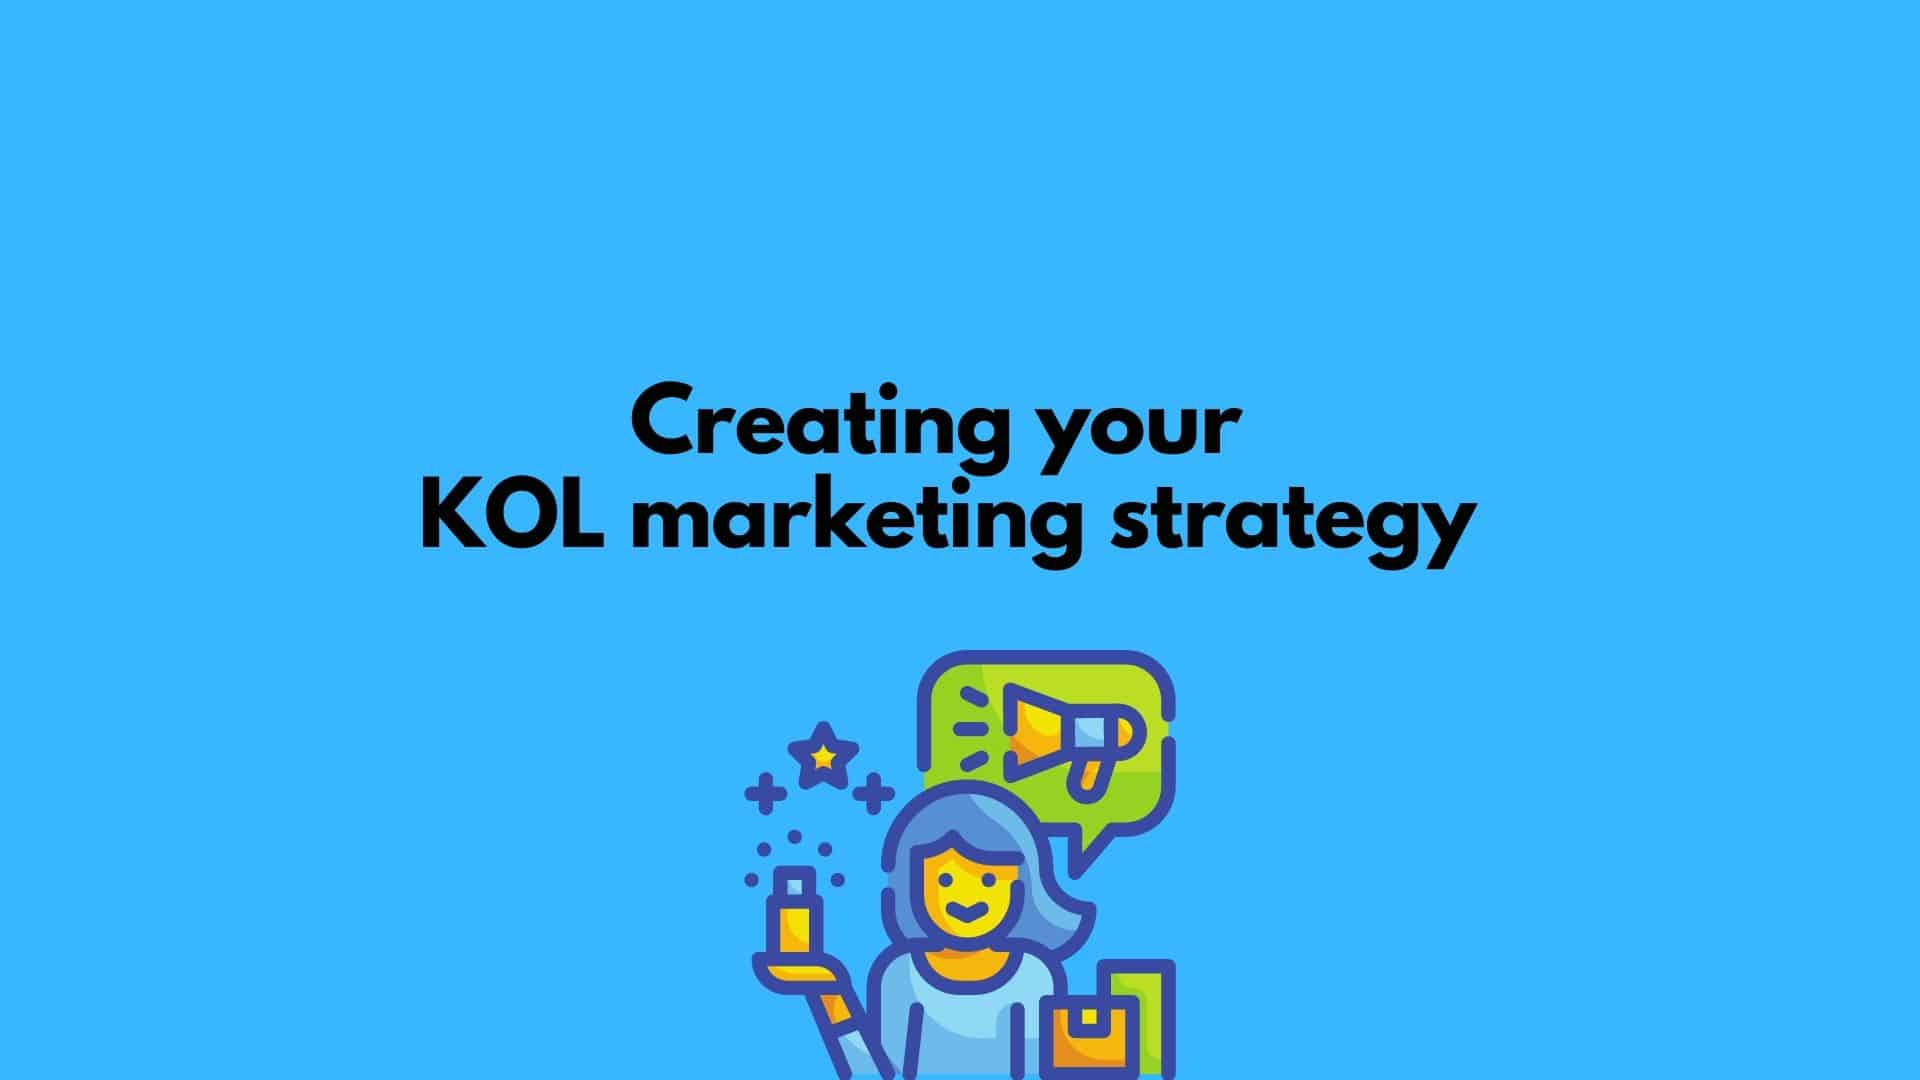 Your KOL marketing strategy – Finding success with China's influencers